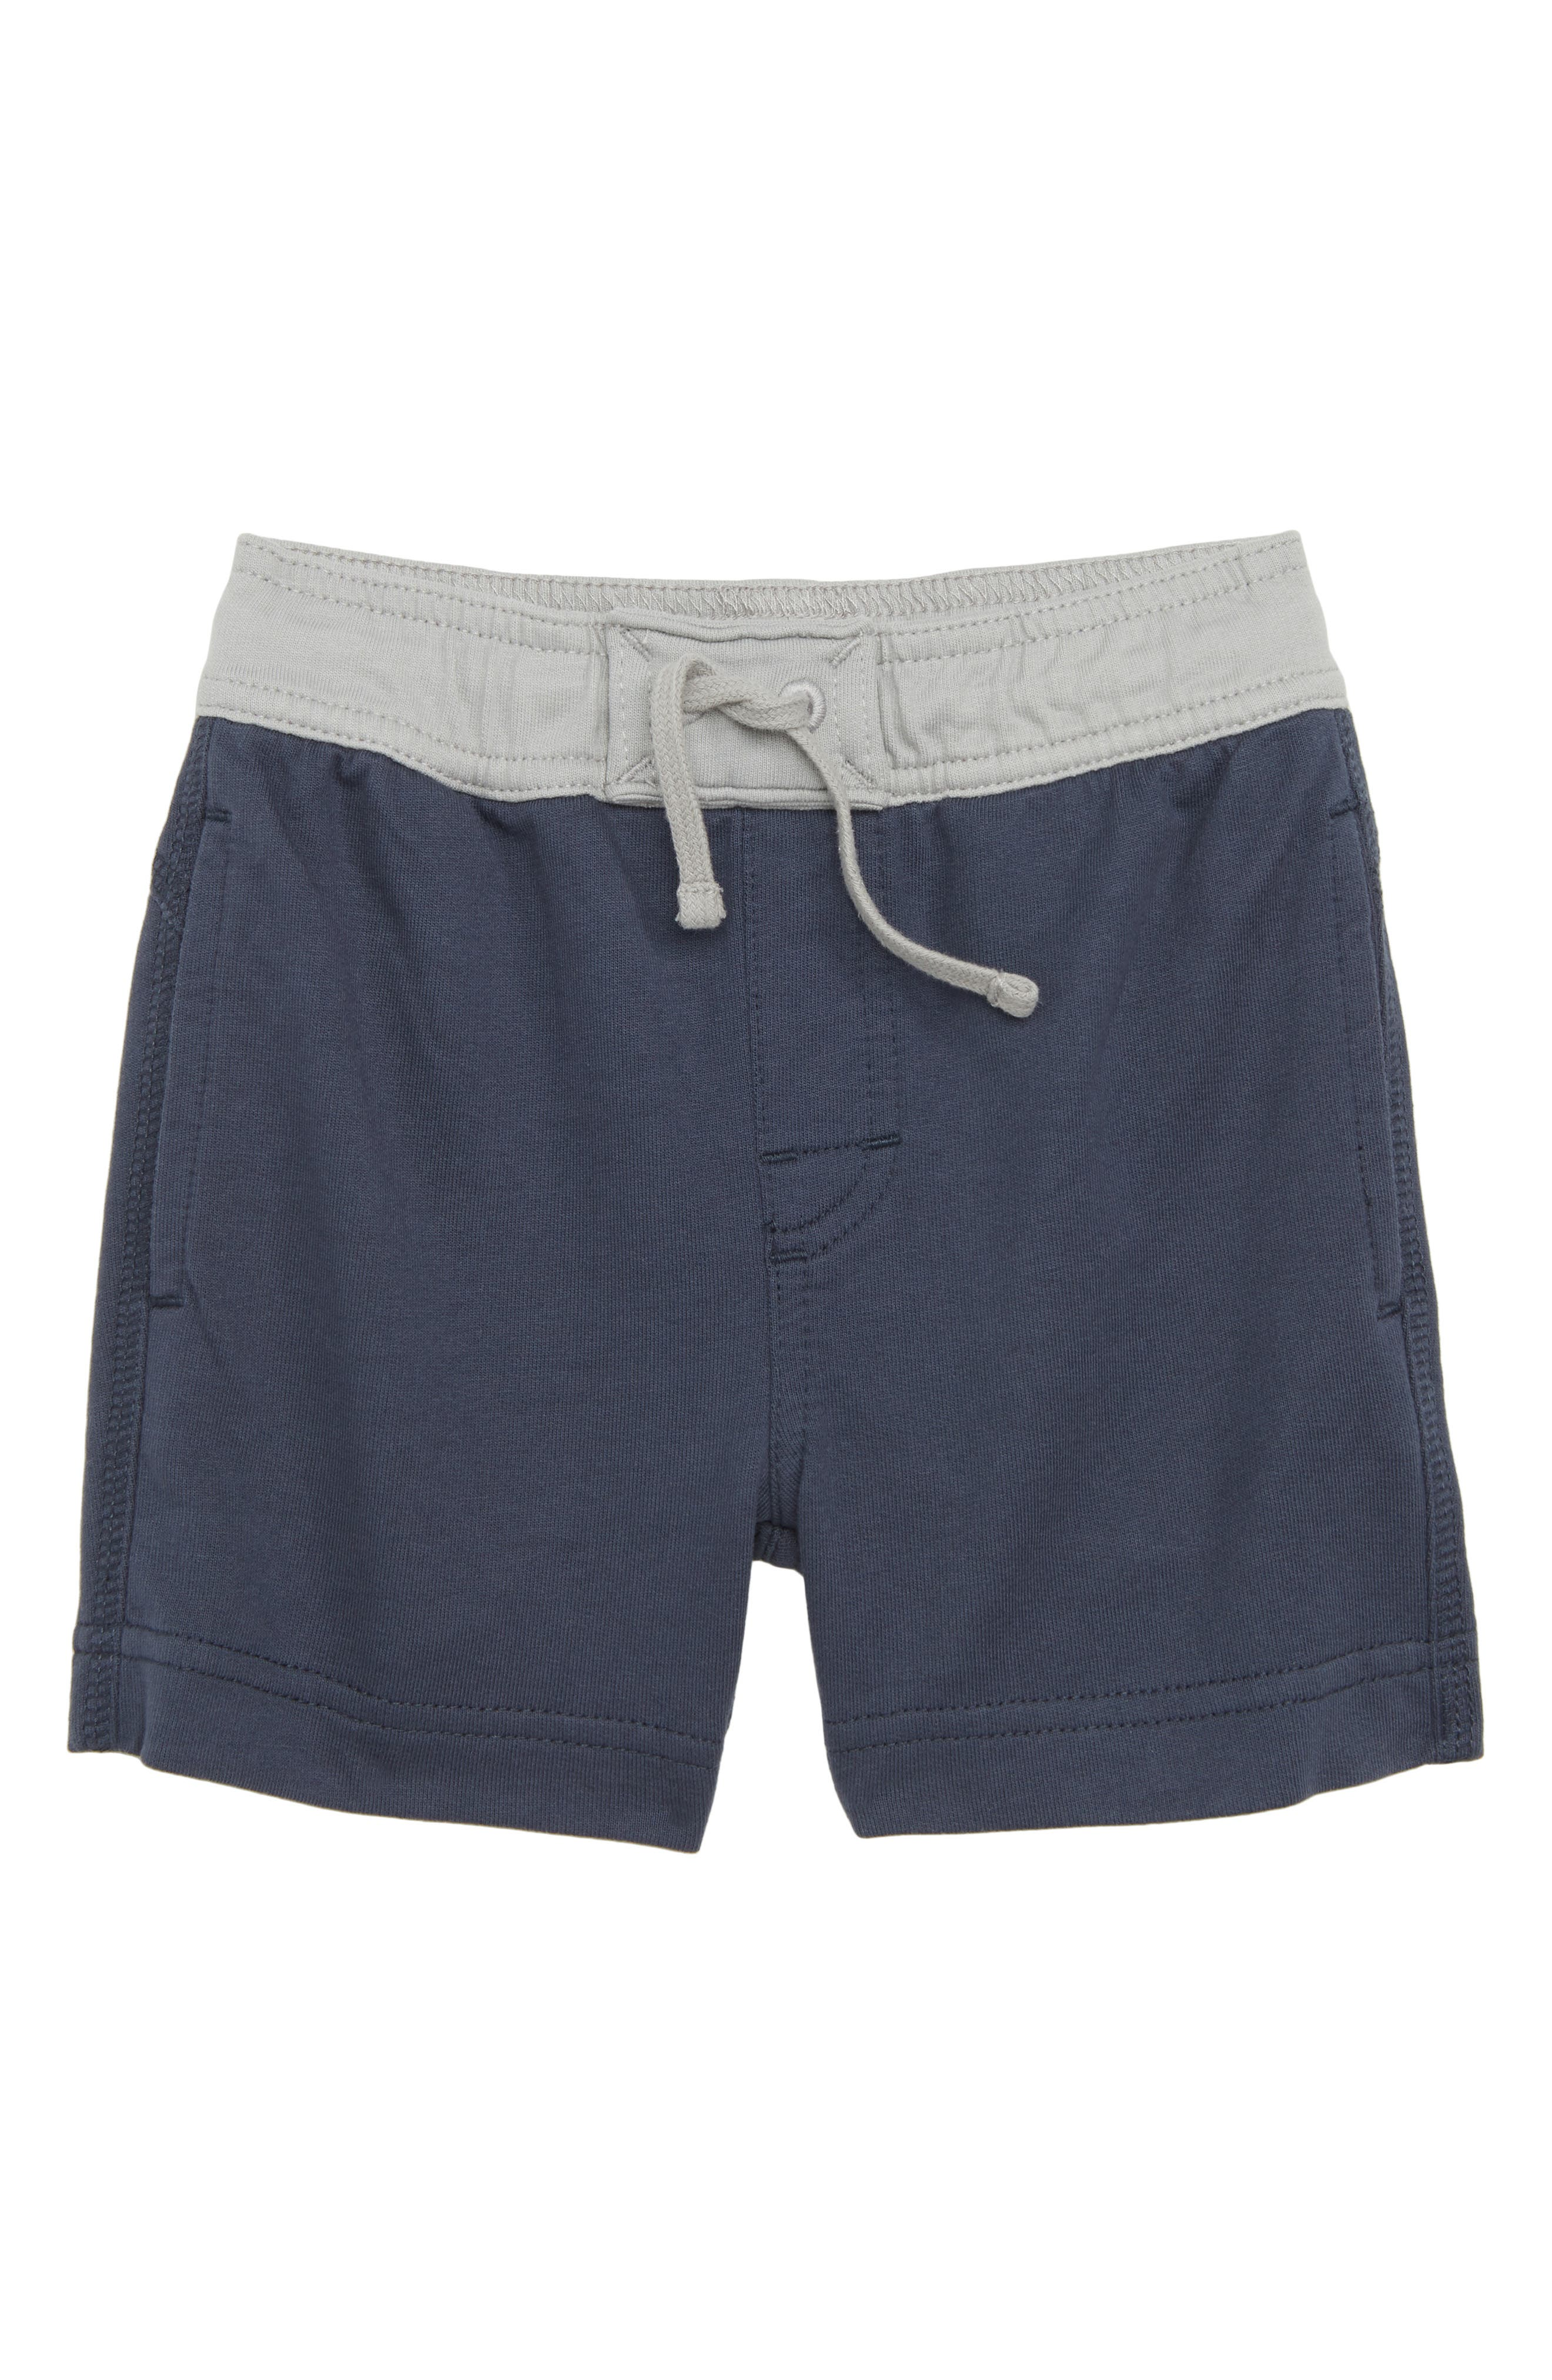 Tea Collection Boardies Surf Shorts (Baby Boys)